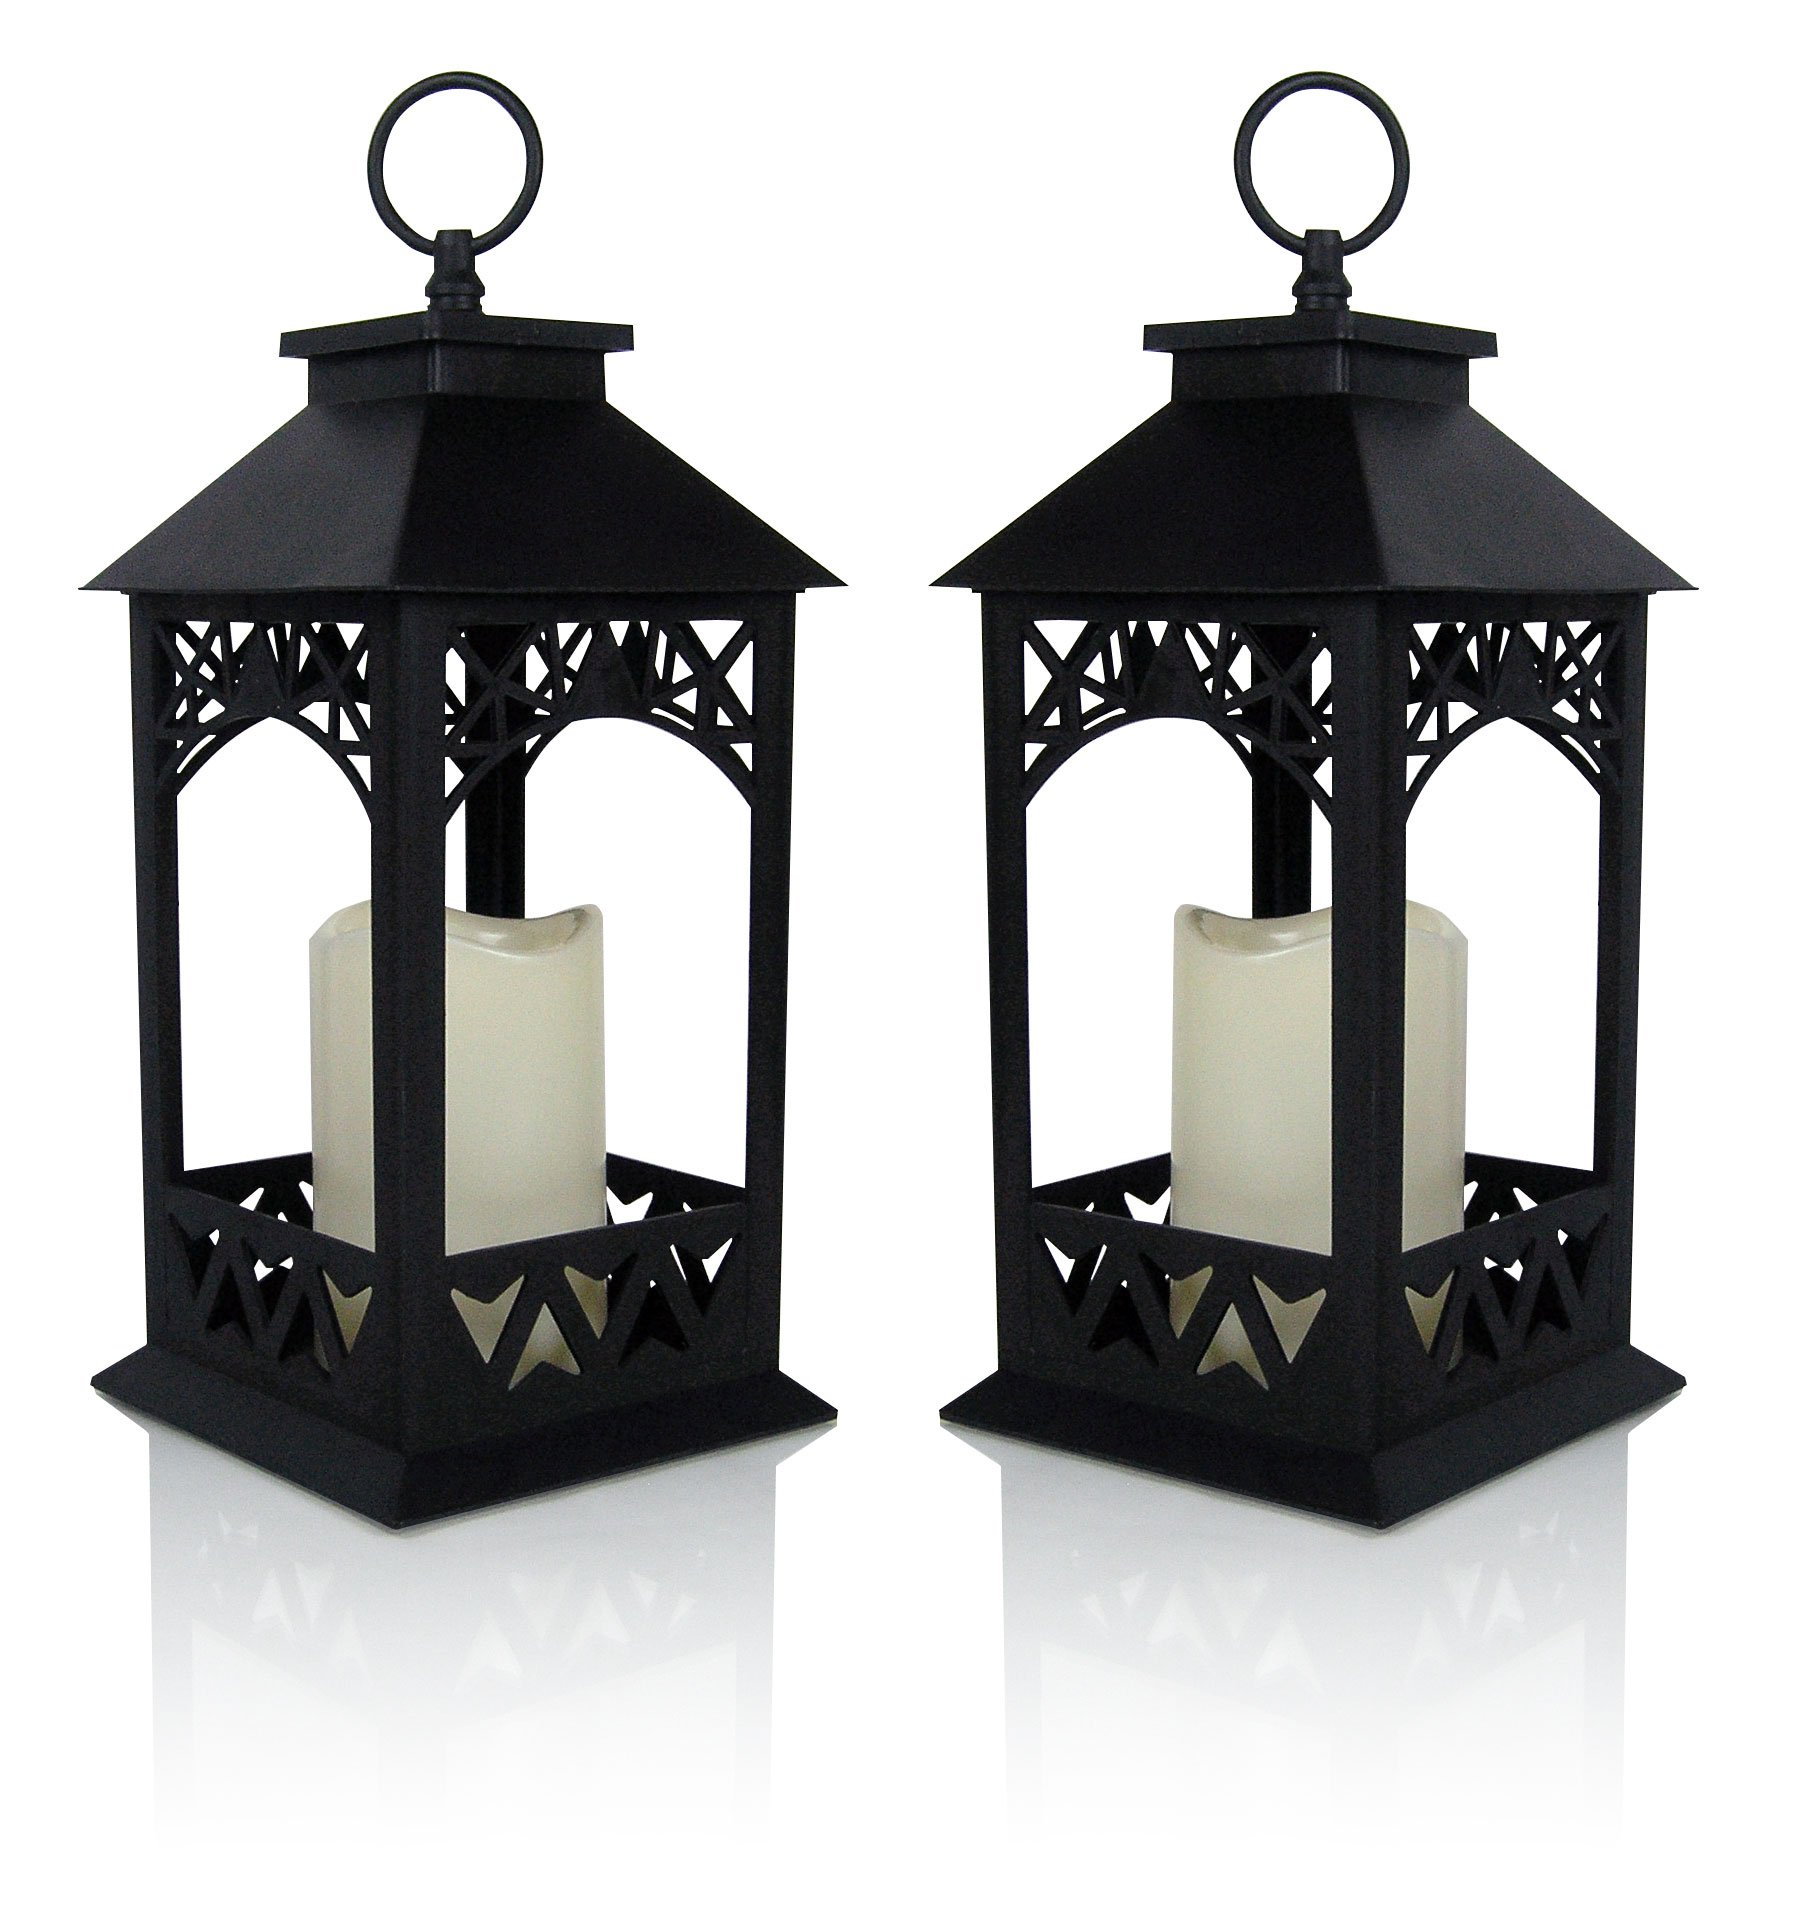 BANBERRY DESIGNS Decorative Lanterns - Set of 2 Black Lantern with LED Pillar Candle and a 5 Hour Timer - Candle Lanterns Outdoor - 13'' H